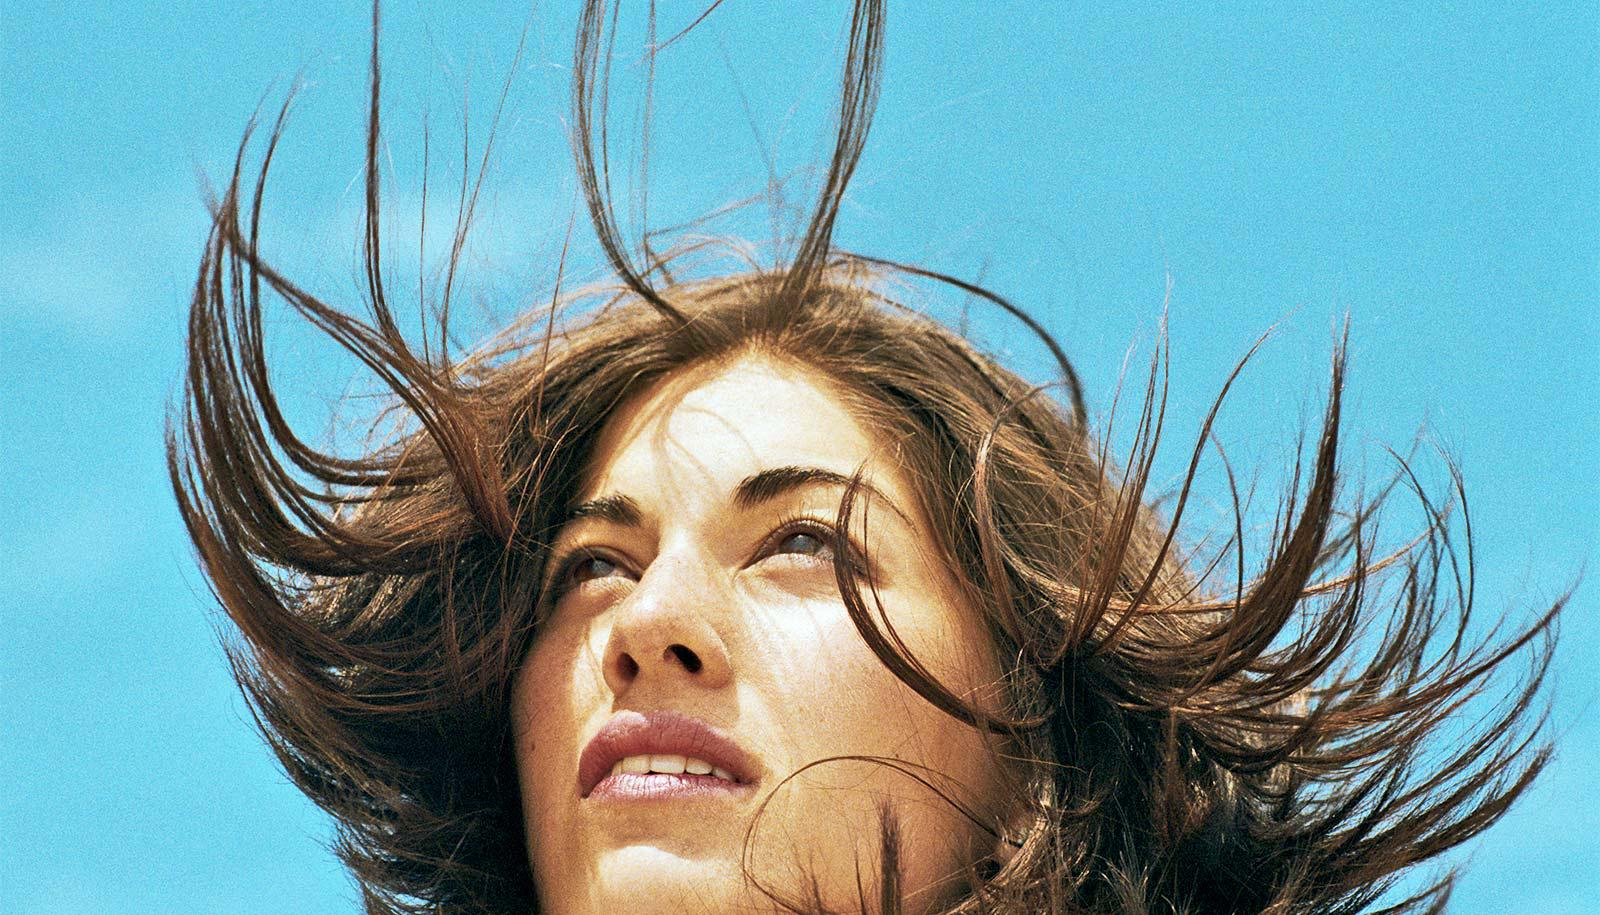 A woman looks off into the distance while her hair blows around